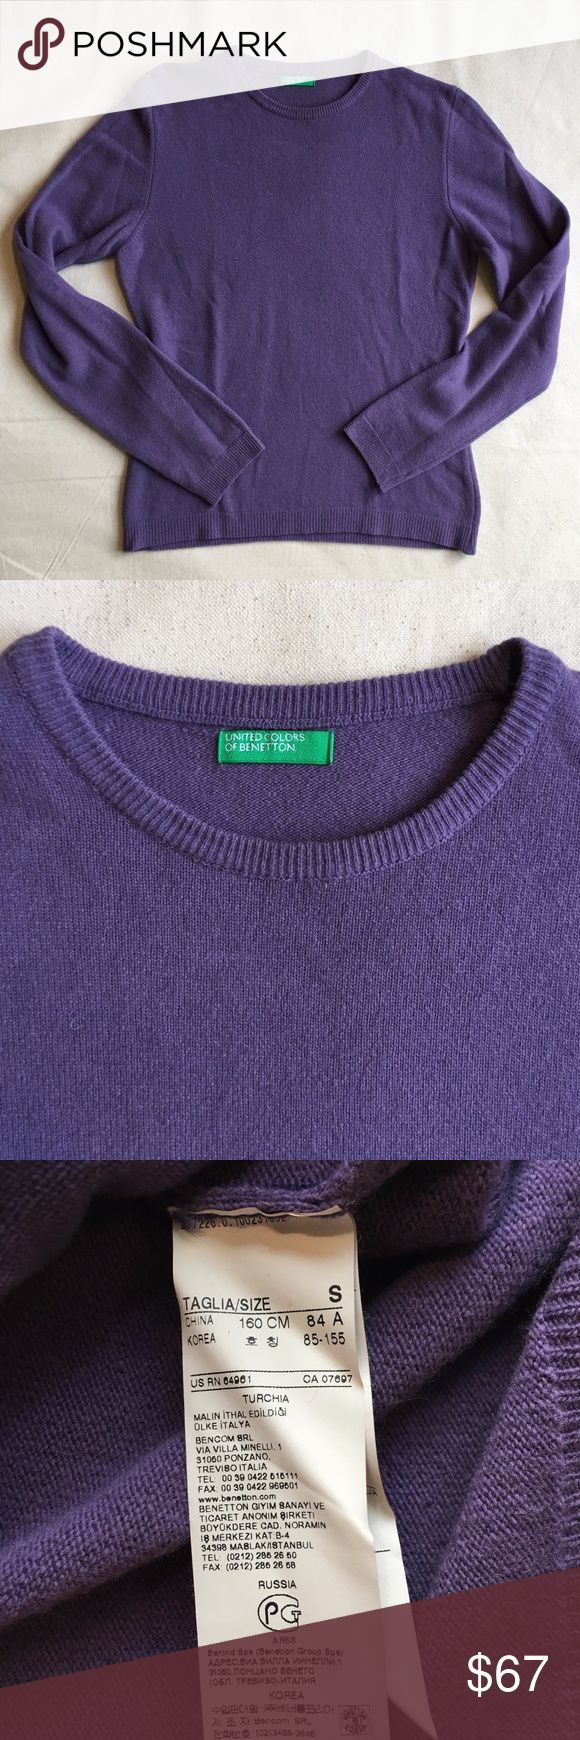 United Colors of Bennetton Crew Wool Sweater SMALL Purchased in Italy, a classic United Colors of Bennetton sweater in EXCELLENT vintage condition. A subdued, yet rich hue of purple - gorgeous in person. Fabric 100% wool. Crewneck. Size: Small. United Colors Of Benetton Sweaters Crew & Scoop Necks